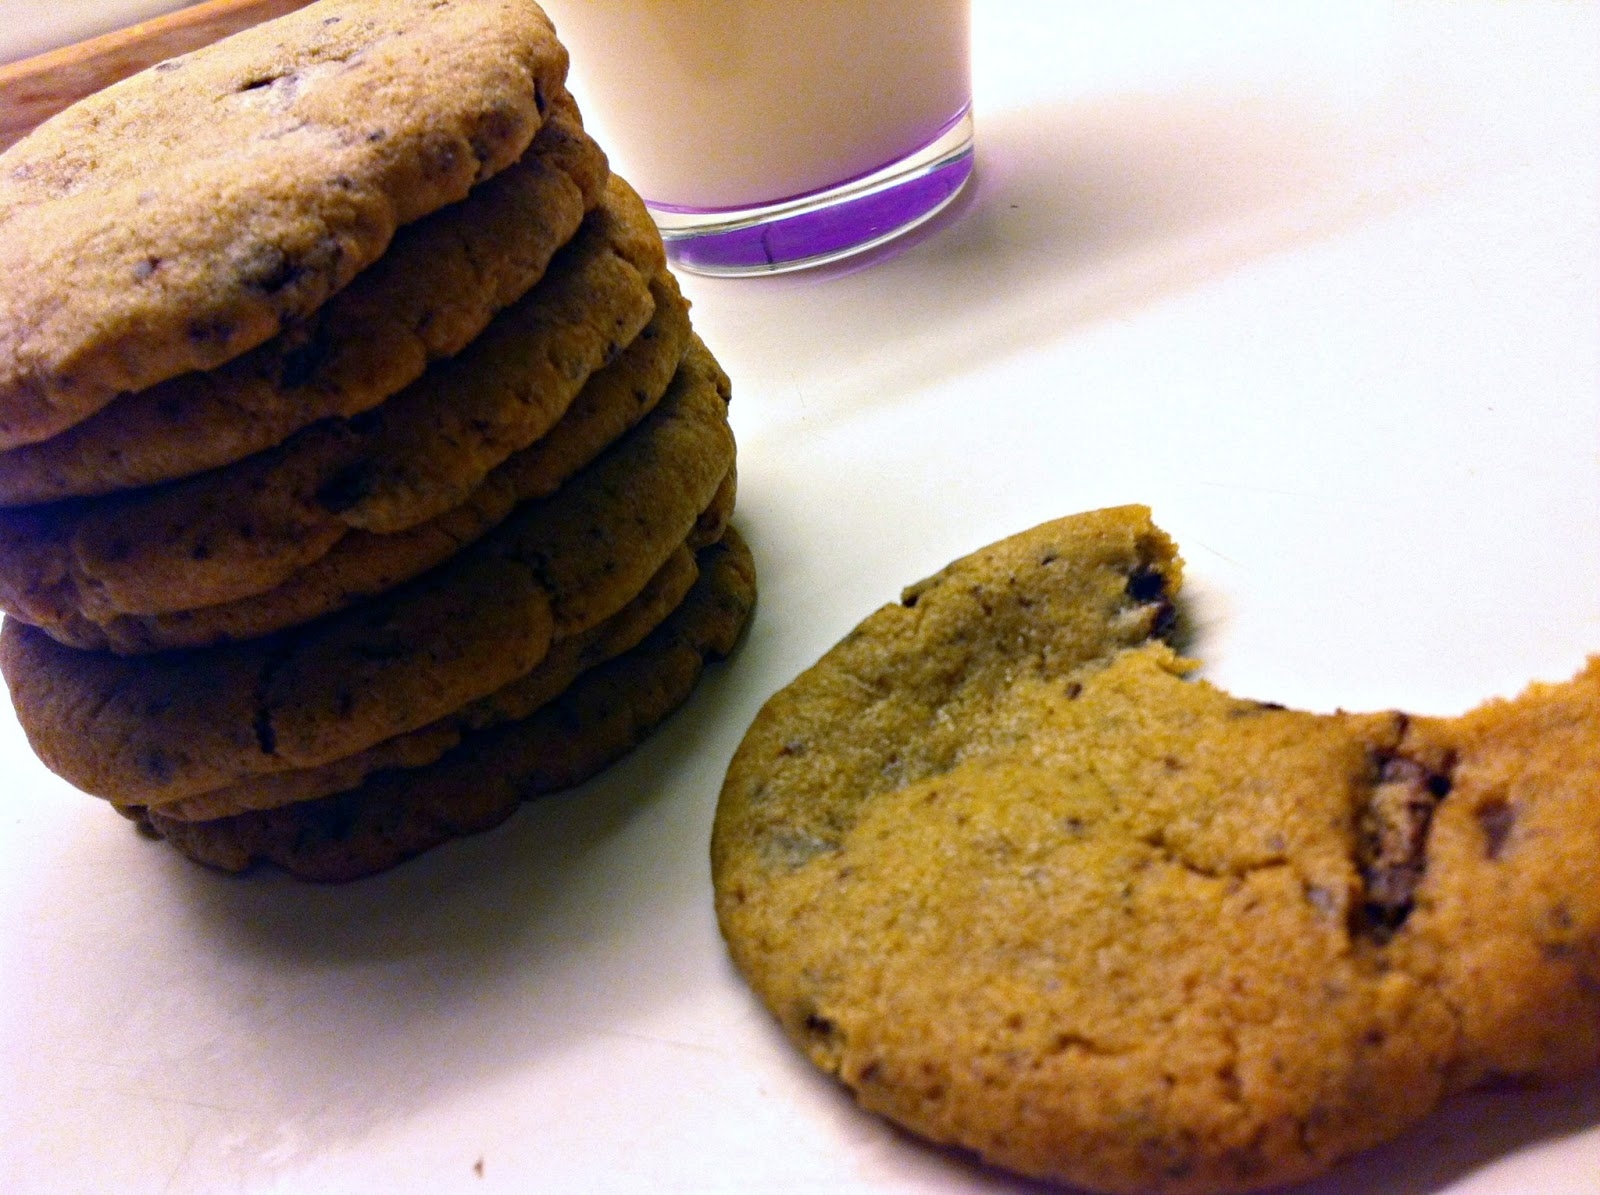 Chocolate chip cookies=